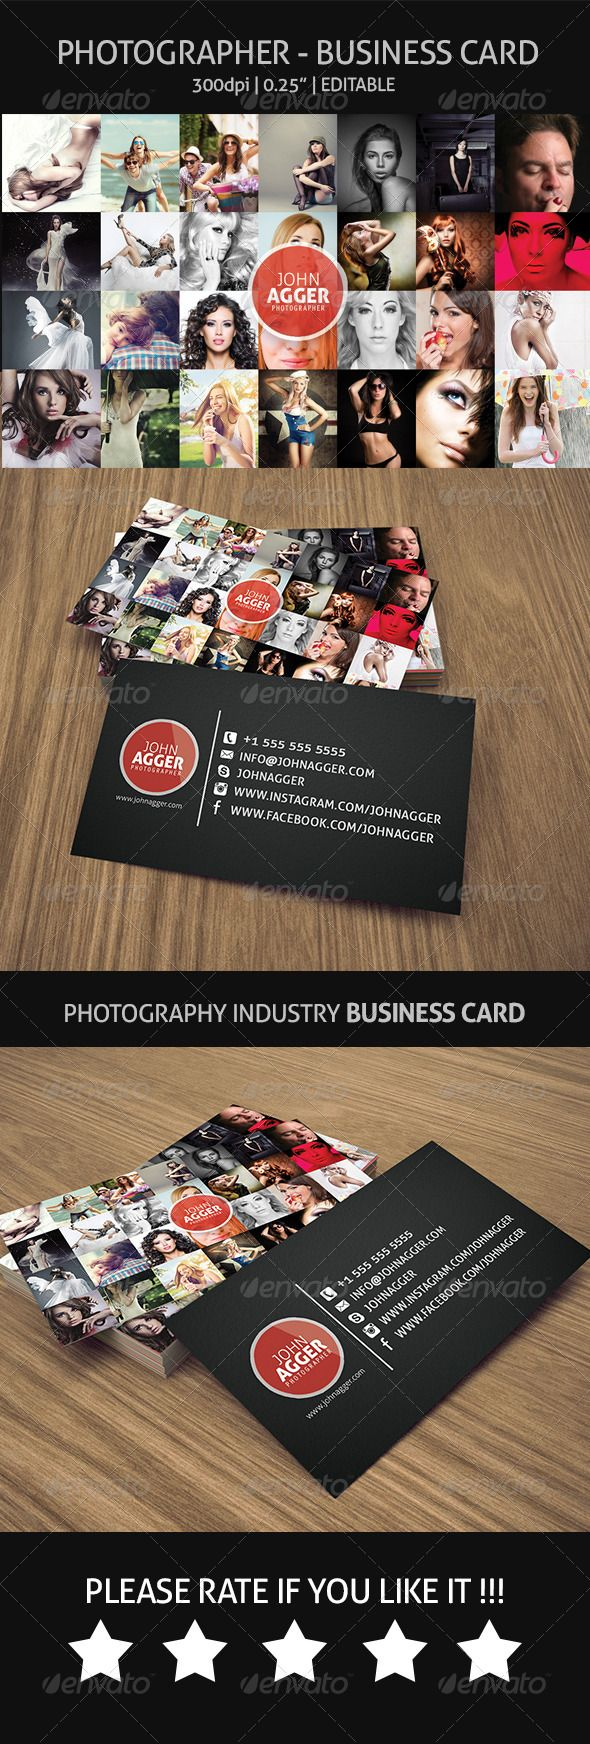 Photographer Business Card 18 best business